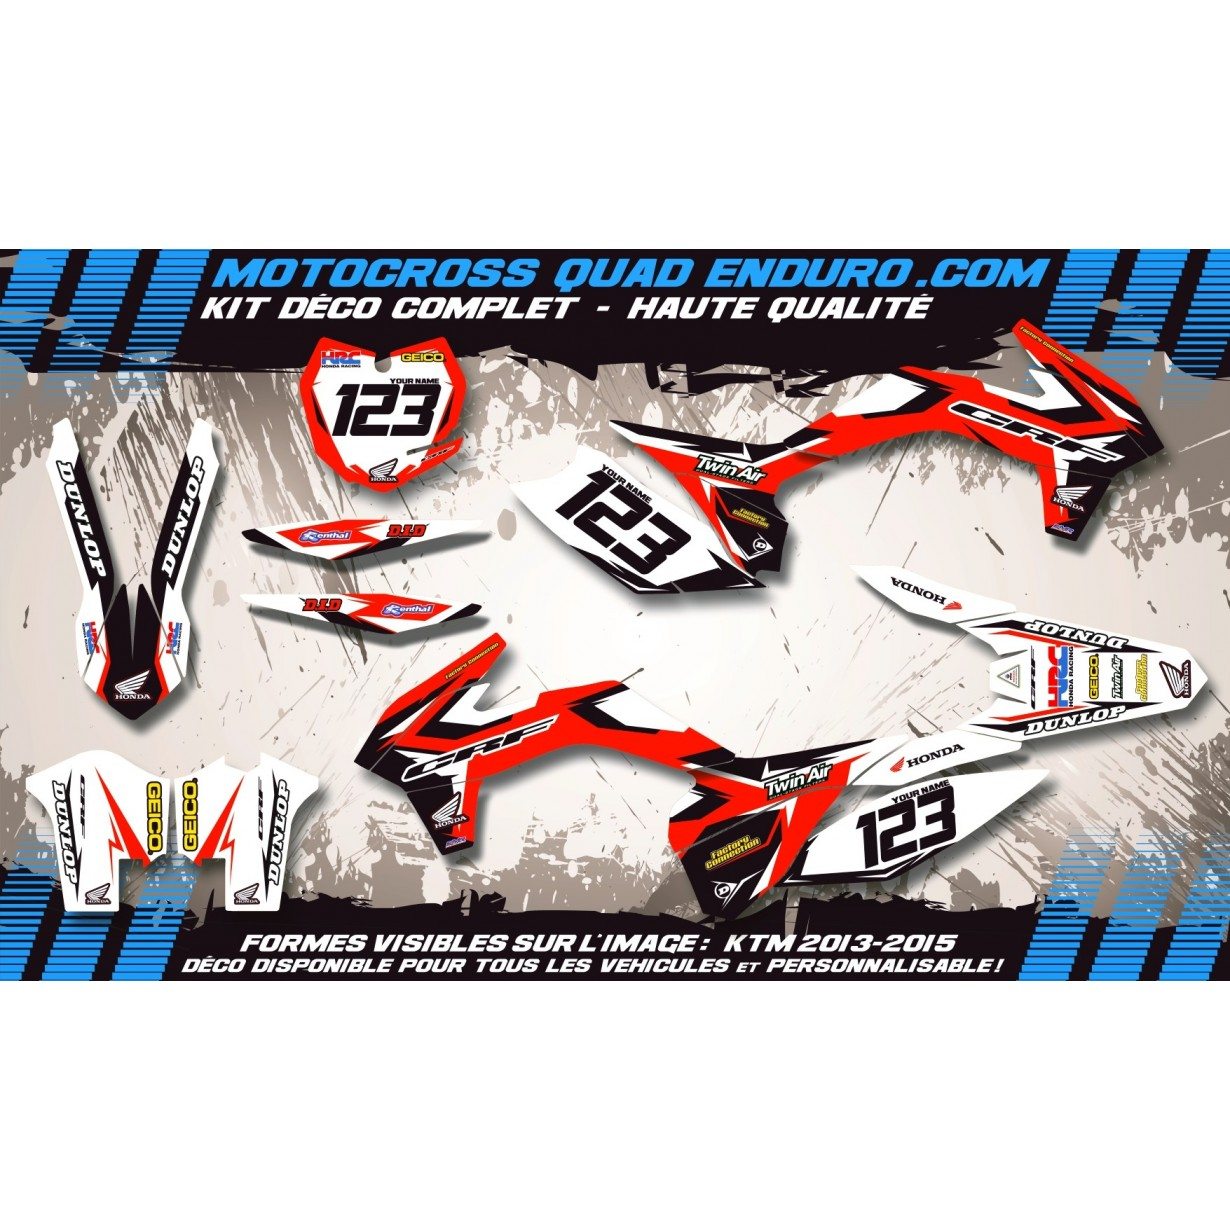 KIT DÉCO Perso 150-230 CRF 03-07 Factory Replica HONDA MA10A